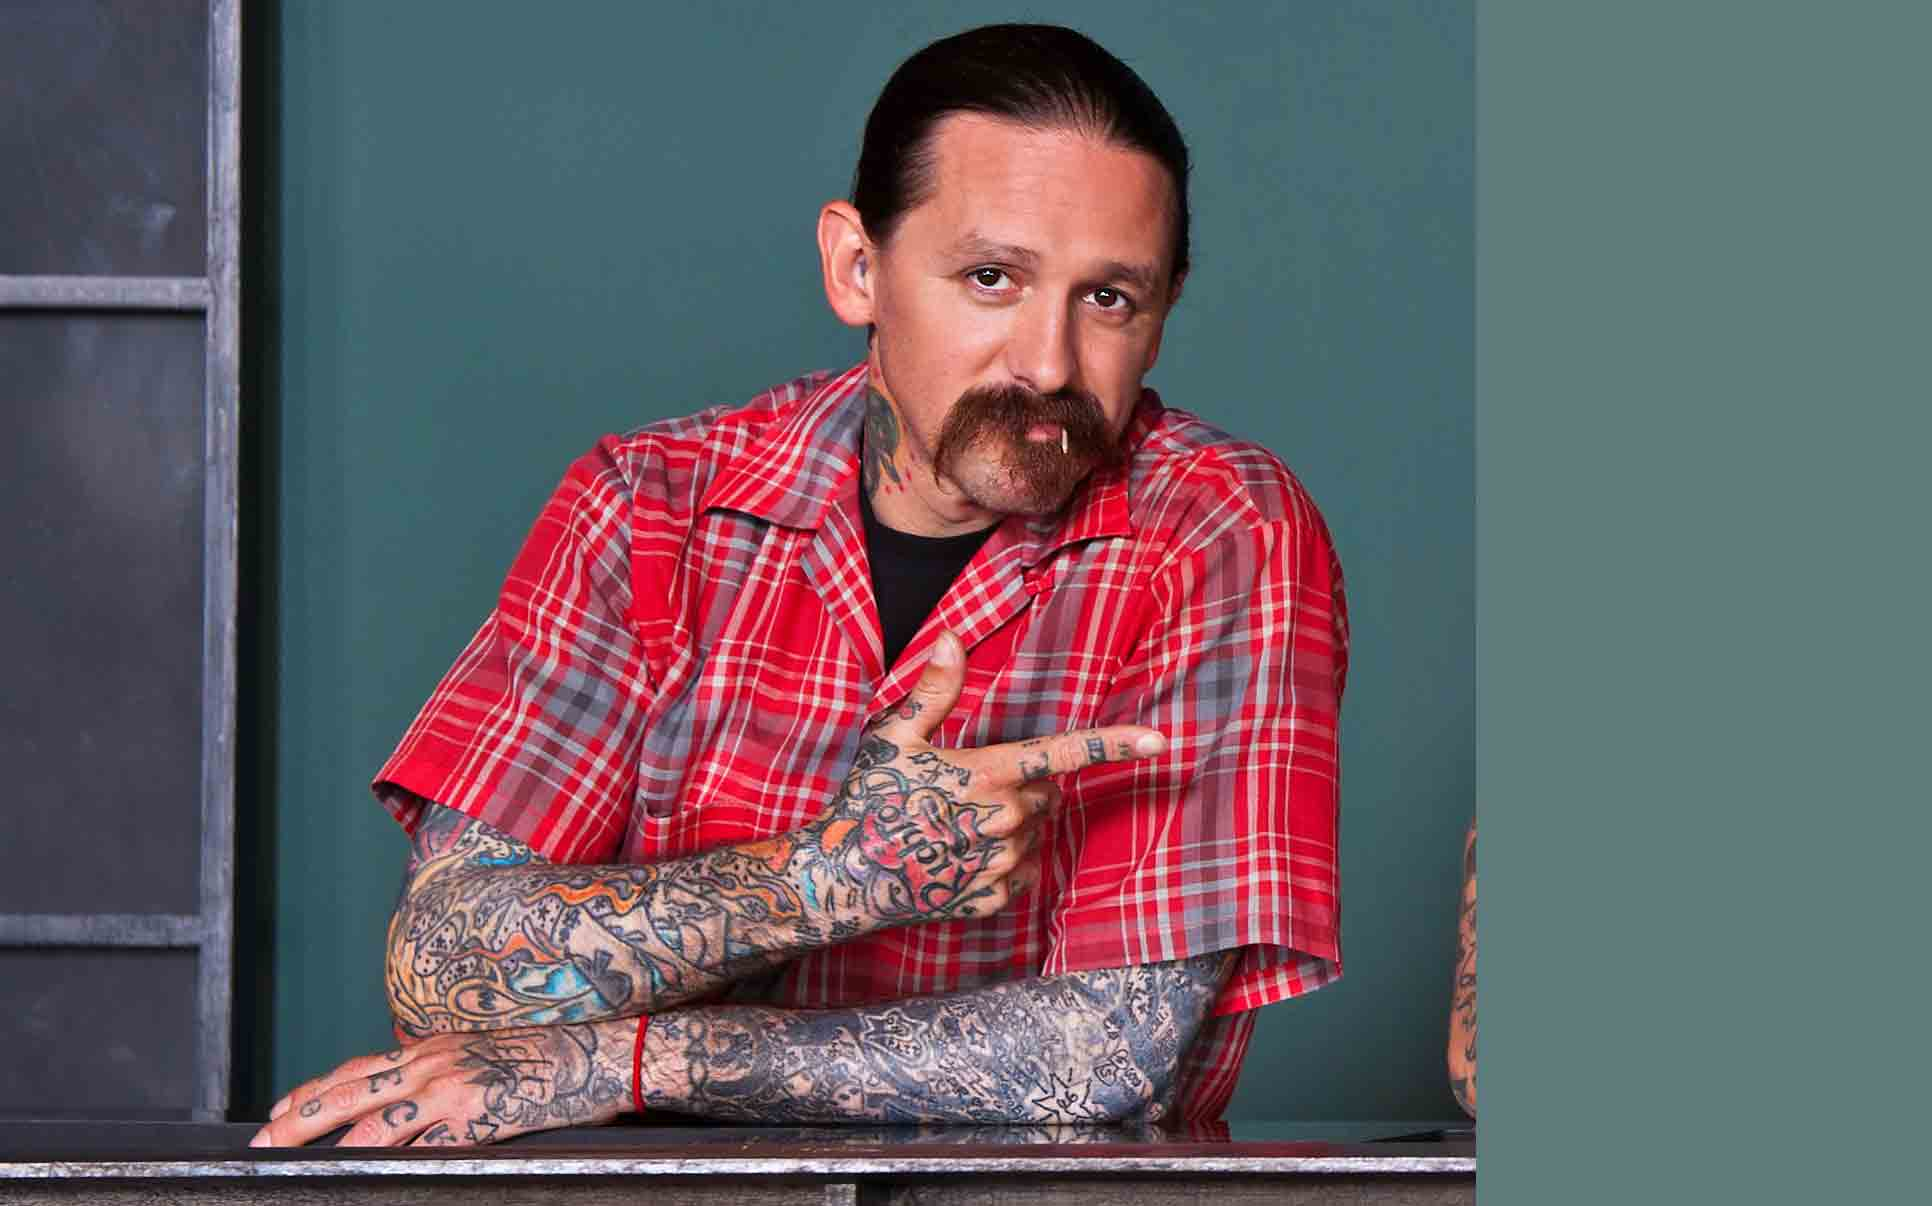 Oliver Peck Tattoos, Age, Net Worth, Wiki, Height, Wife, Relationship, Dating